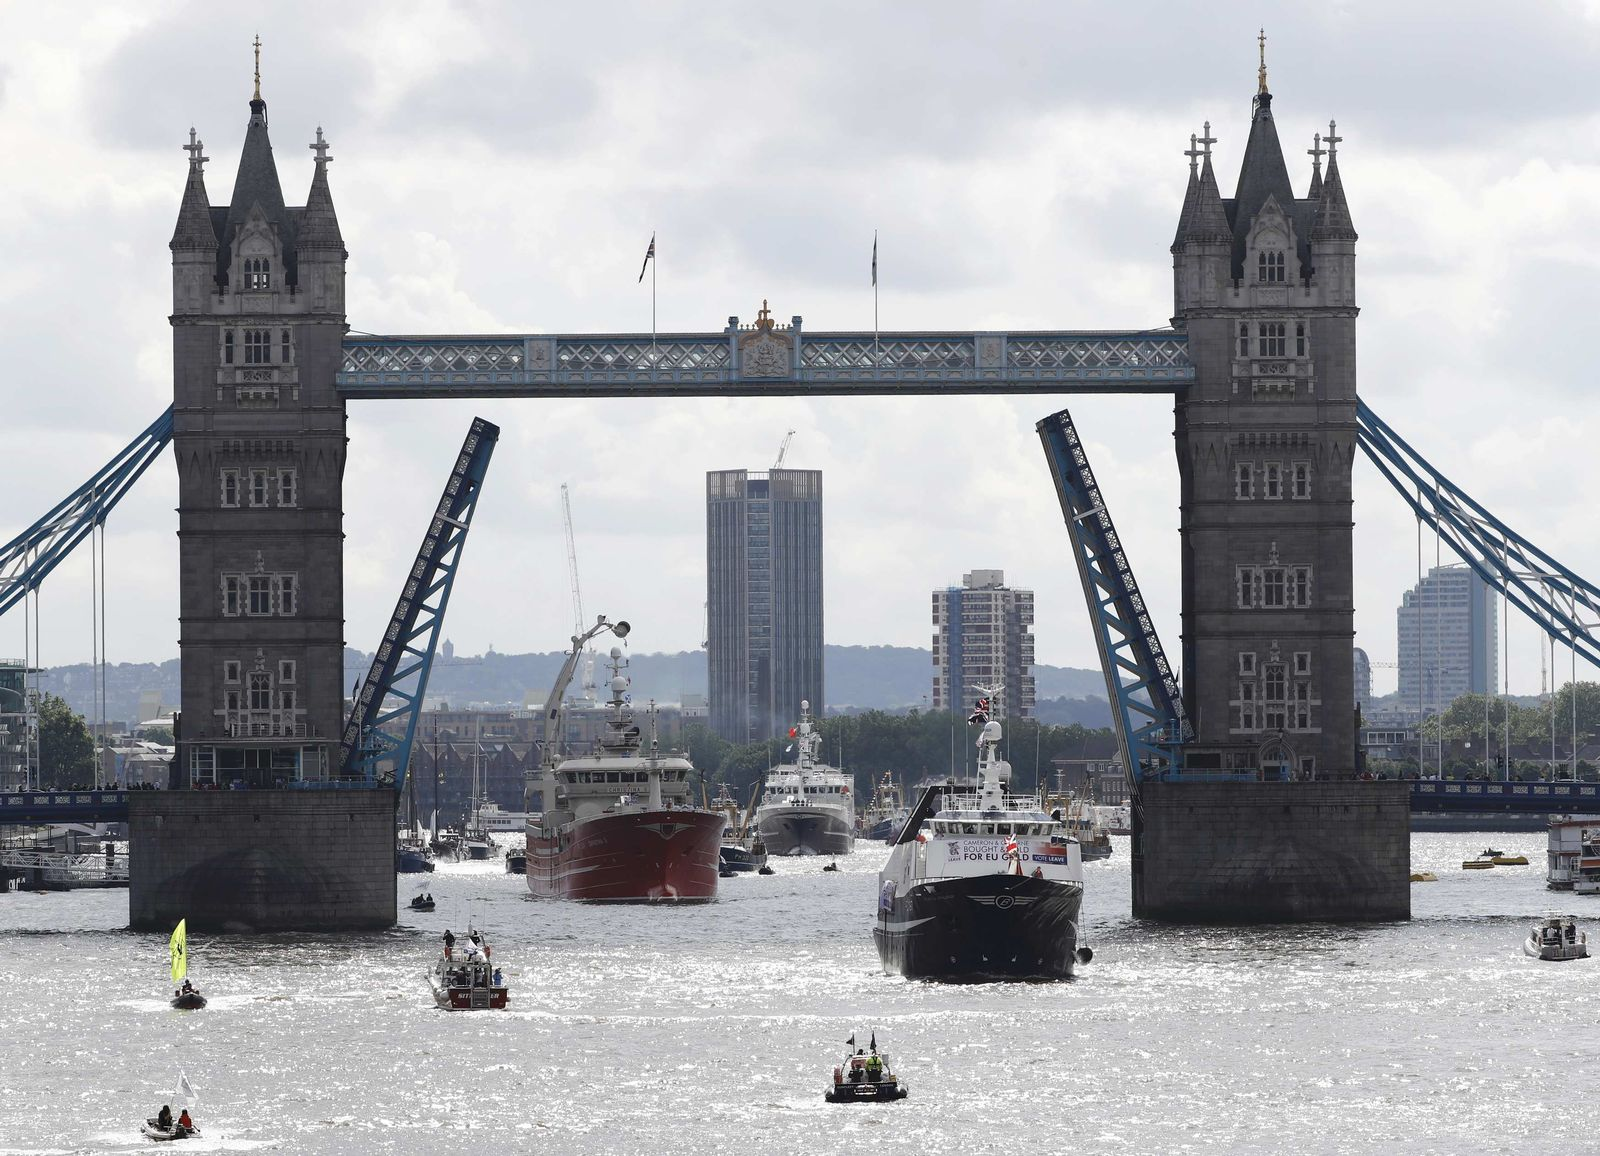 A pro-Remain inflatable dinghy sails in front of a flotilla of fishing vessels campaigning to leave the European Union as it sails under Tower Bridge on its way up the river Thames in London